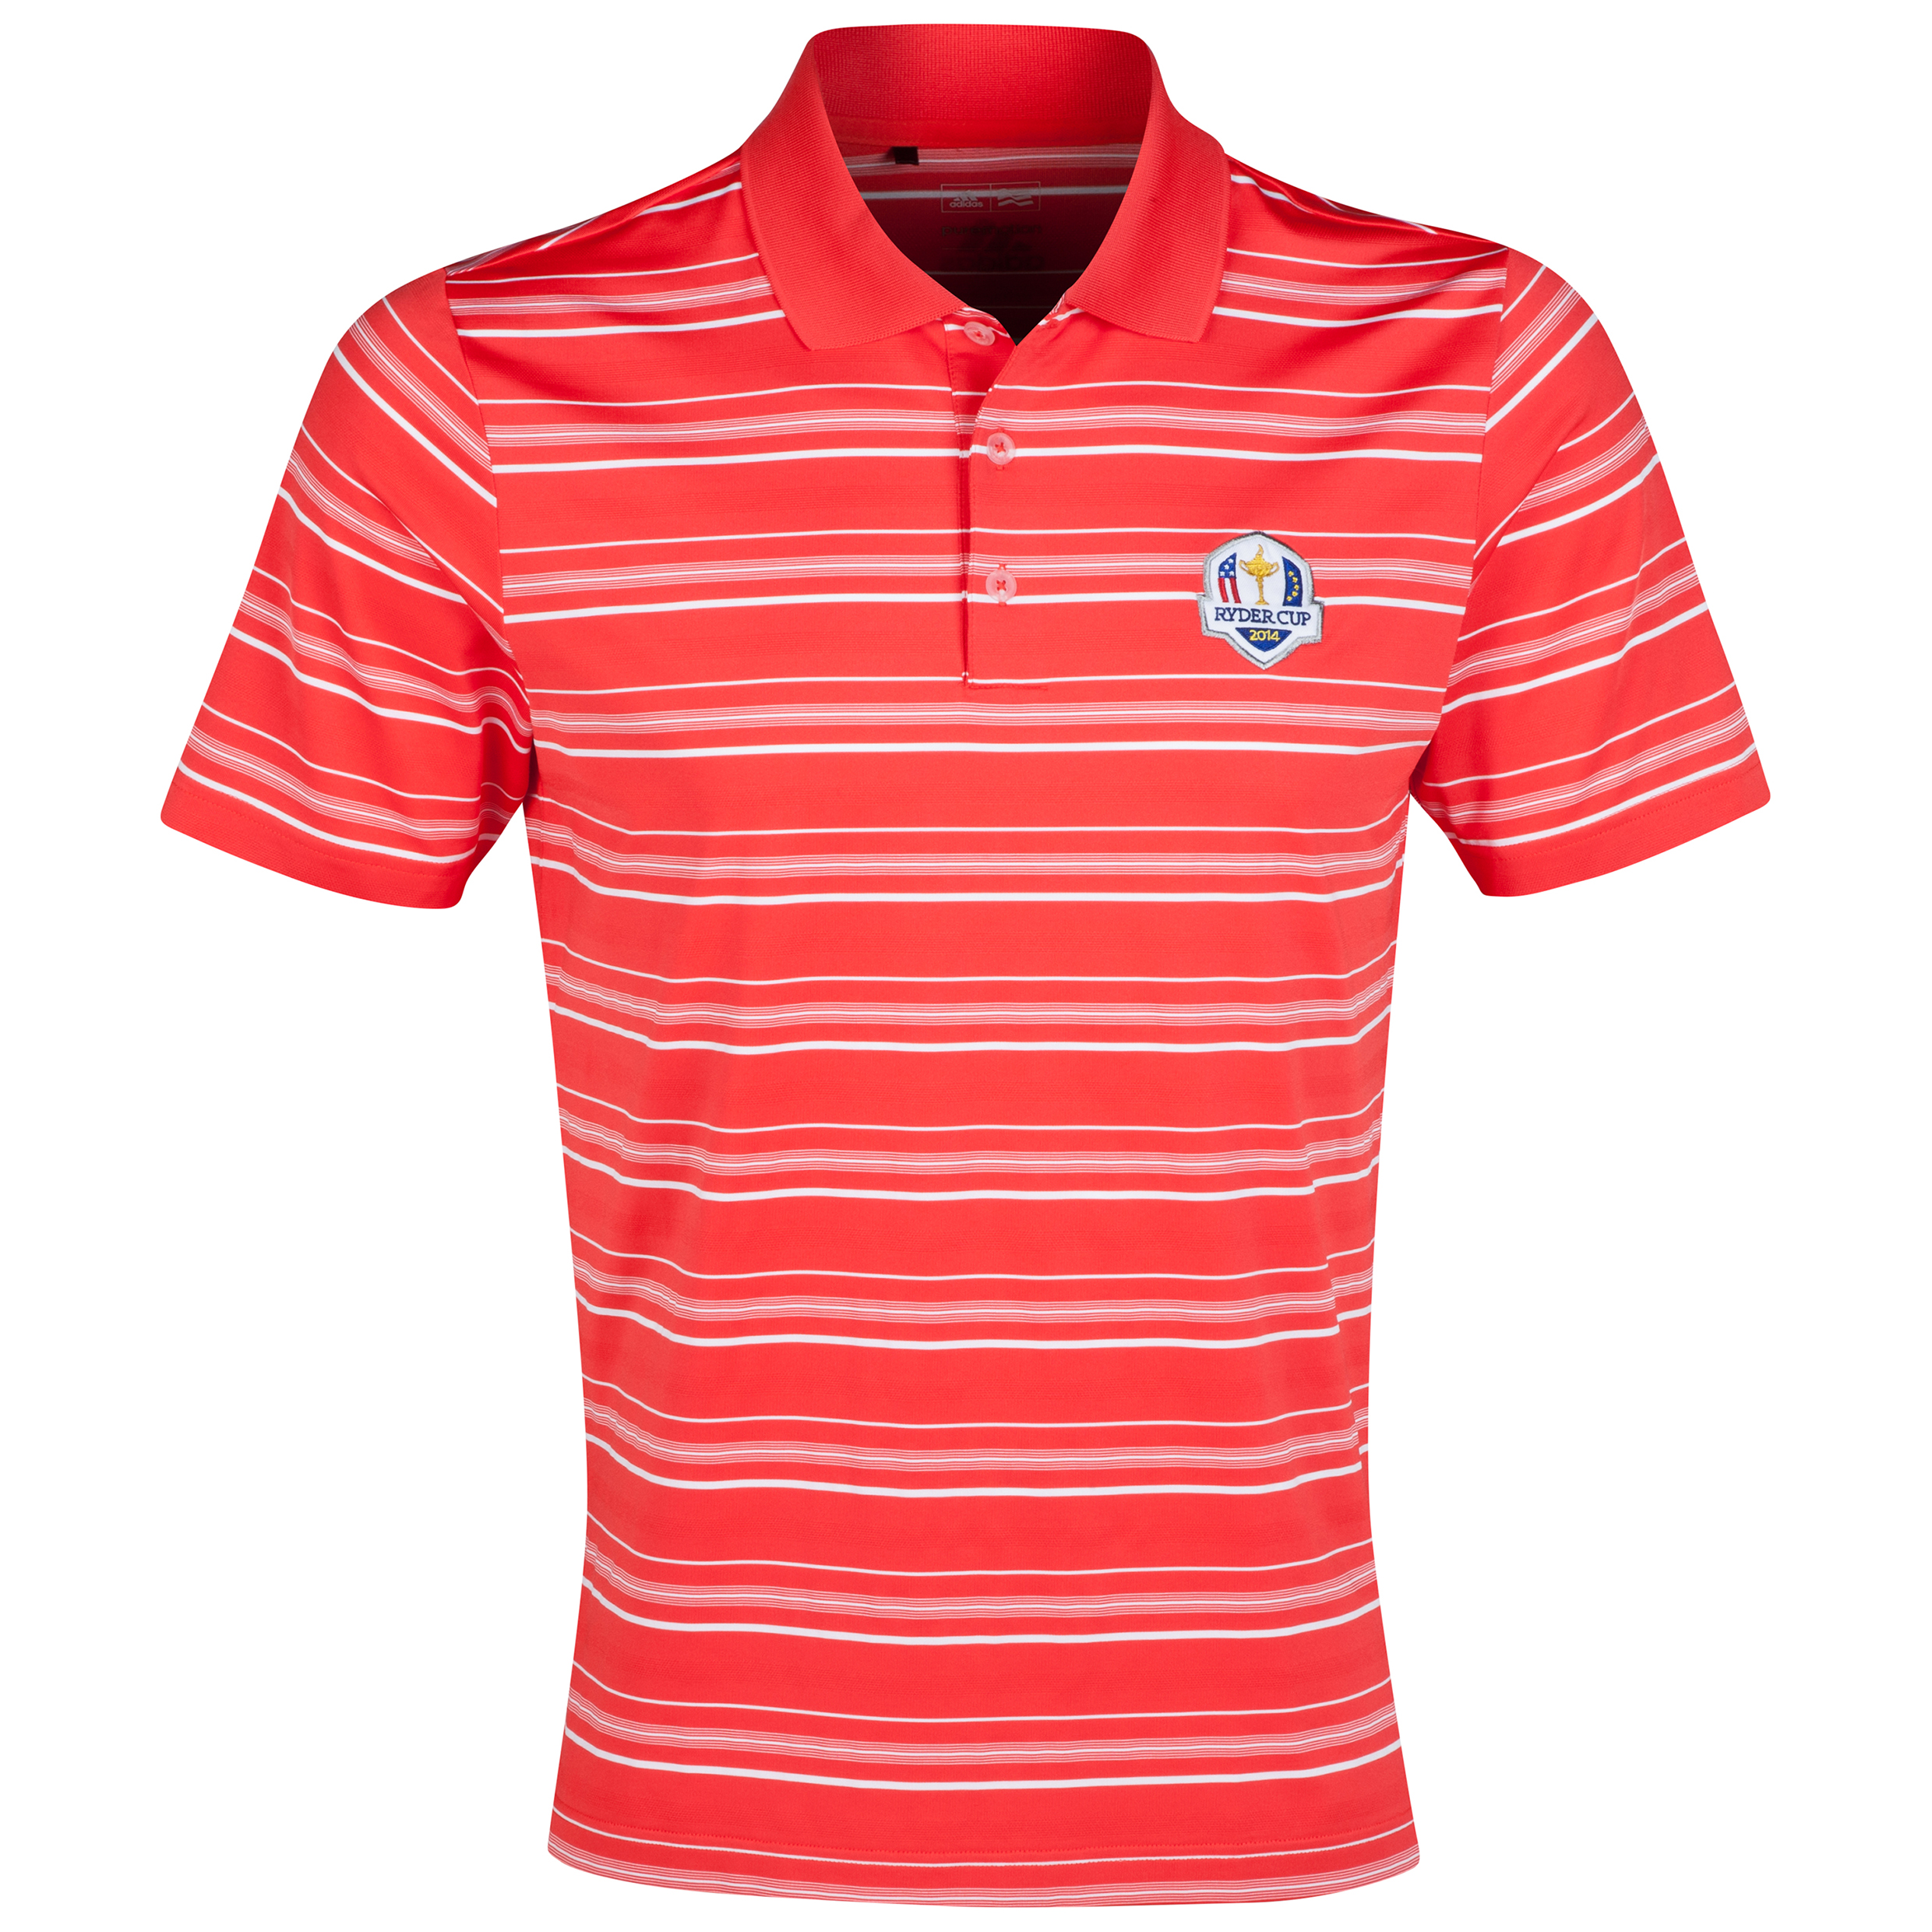 The 2014 Ryder Cup ClimaLite 2-Colour Stripe Polo Red